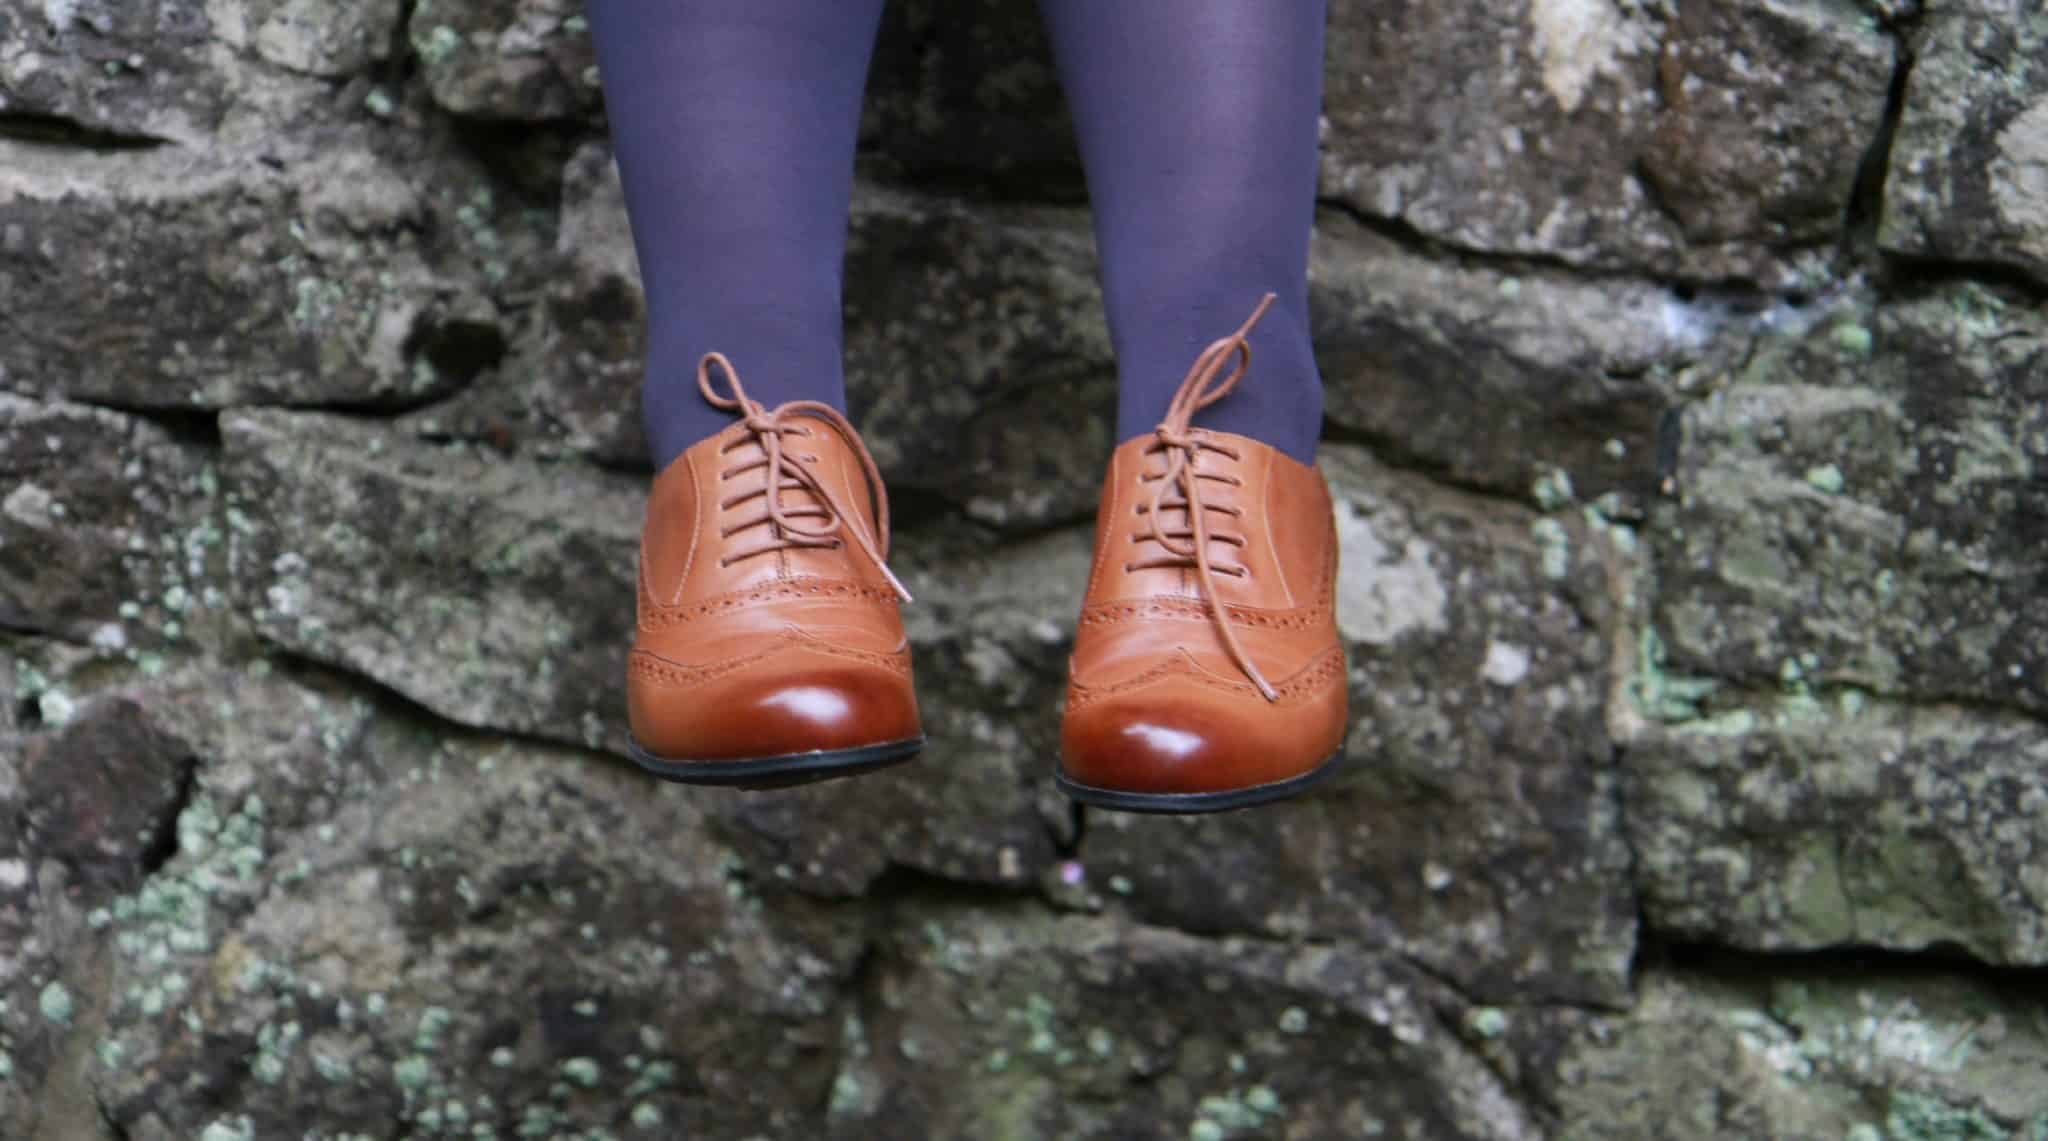 Top quality shoes from Clarks at Brantano-hamble tan brogue shoes, laced with punched detail